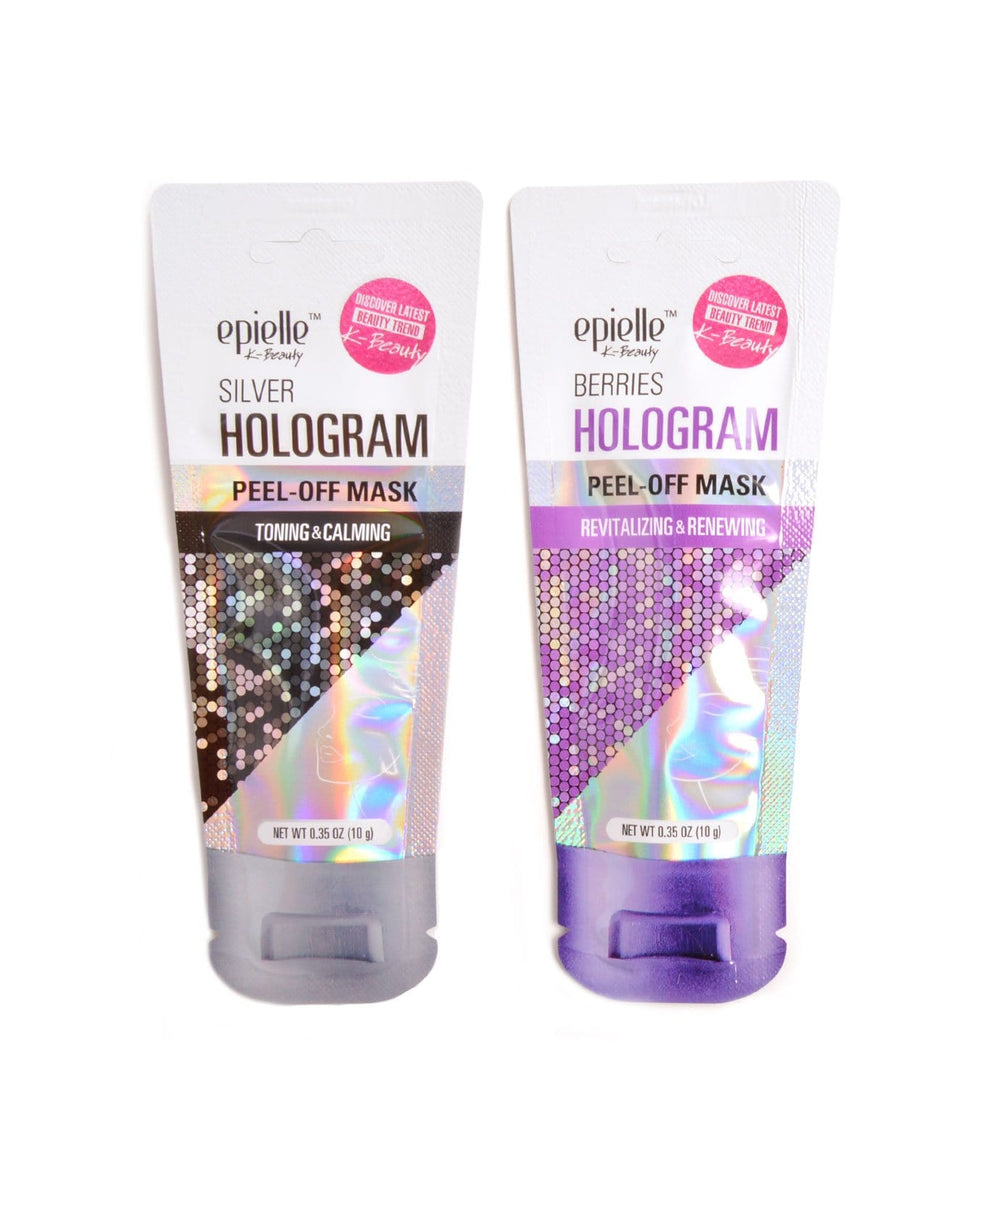 Epielle Hologram Peel-Off Mask